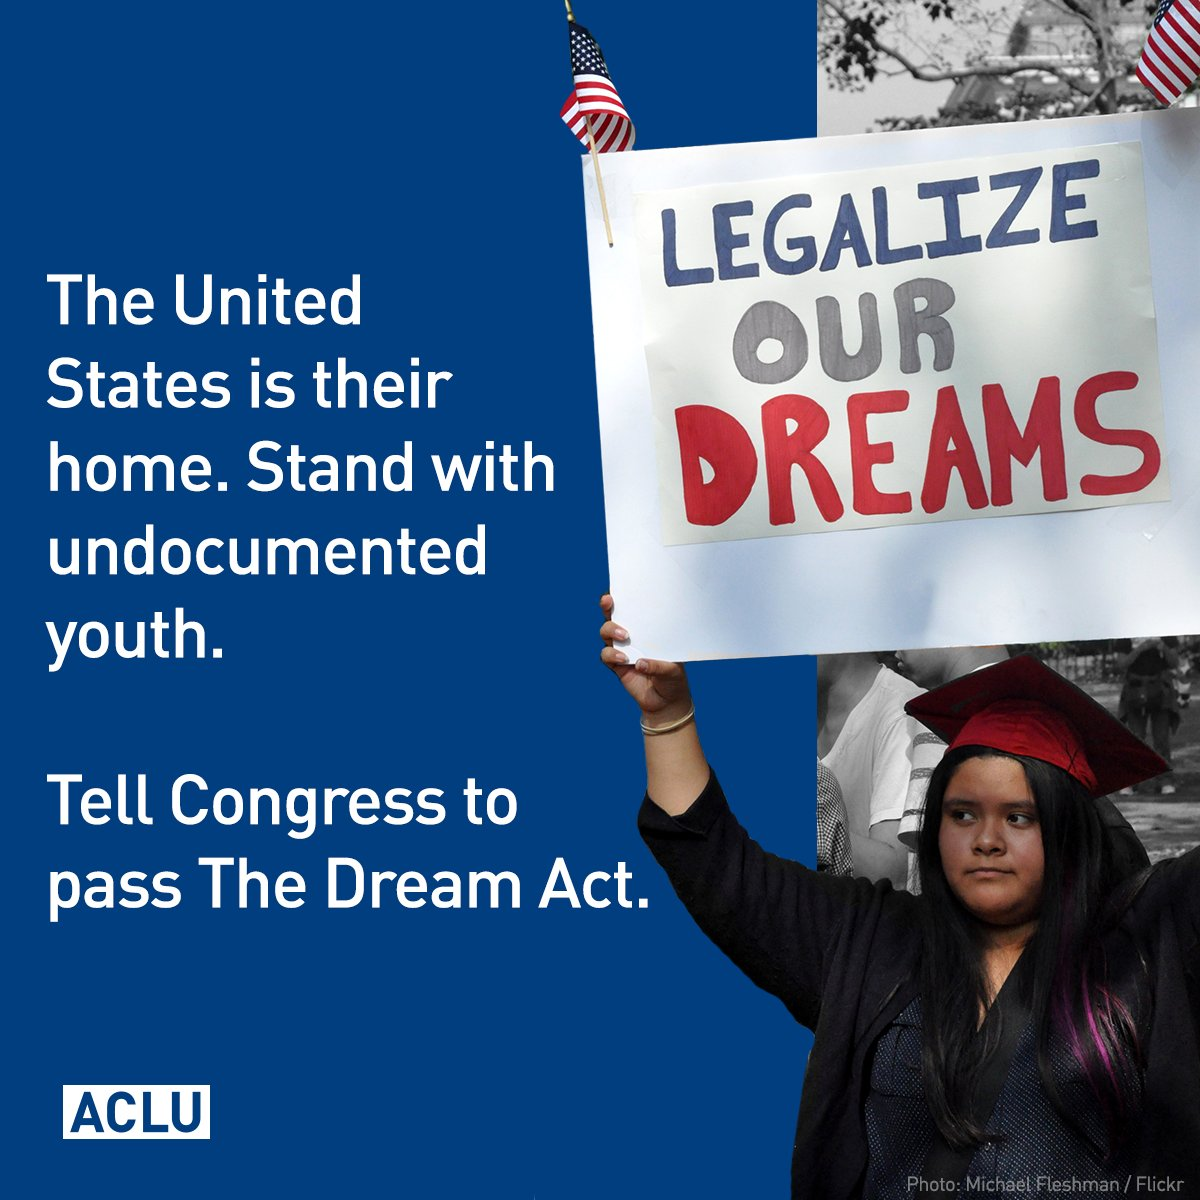 Passing the DREAM Act to achieve permanent security for young immigrants is long overdue. Congress should act. #HereToStay #DefendDACA